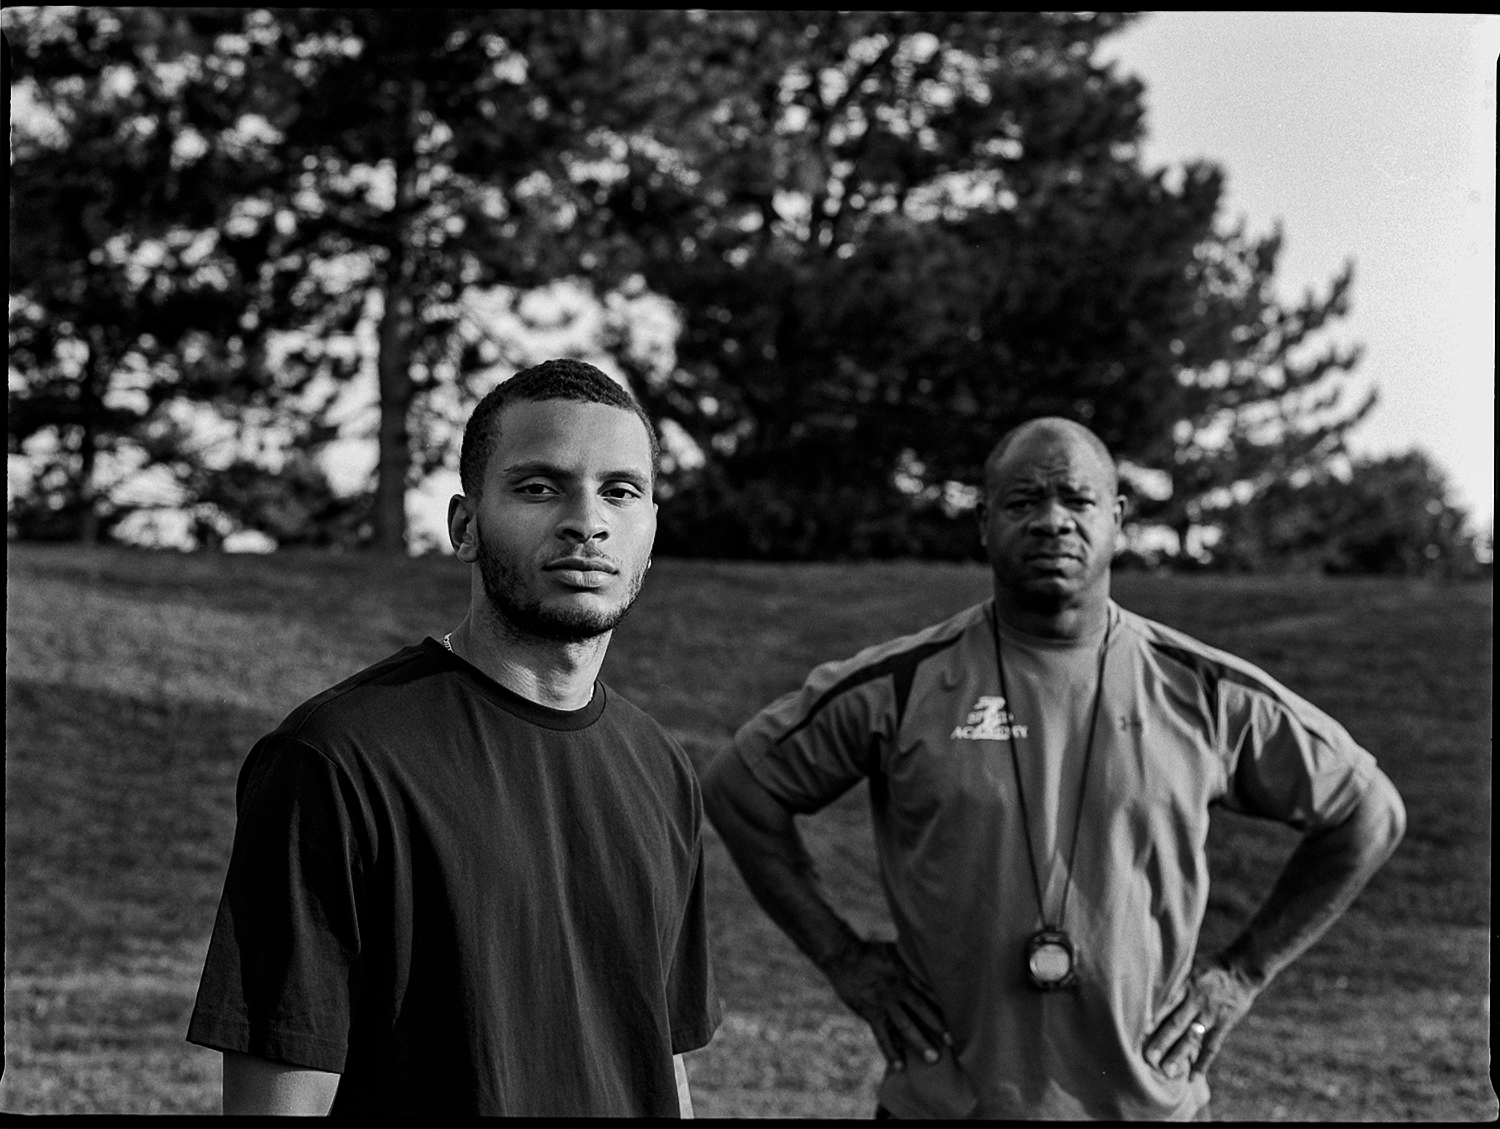 Tony Sharpe and Andre De Grasse / Editorial